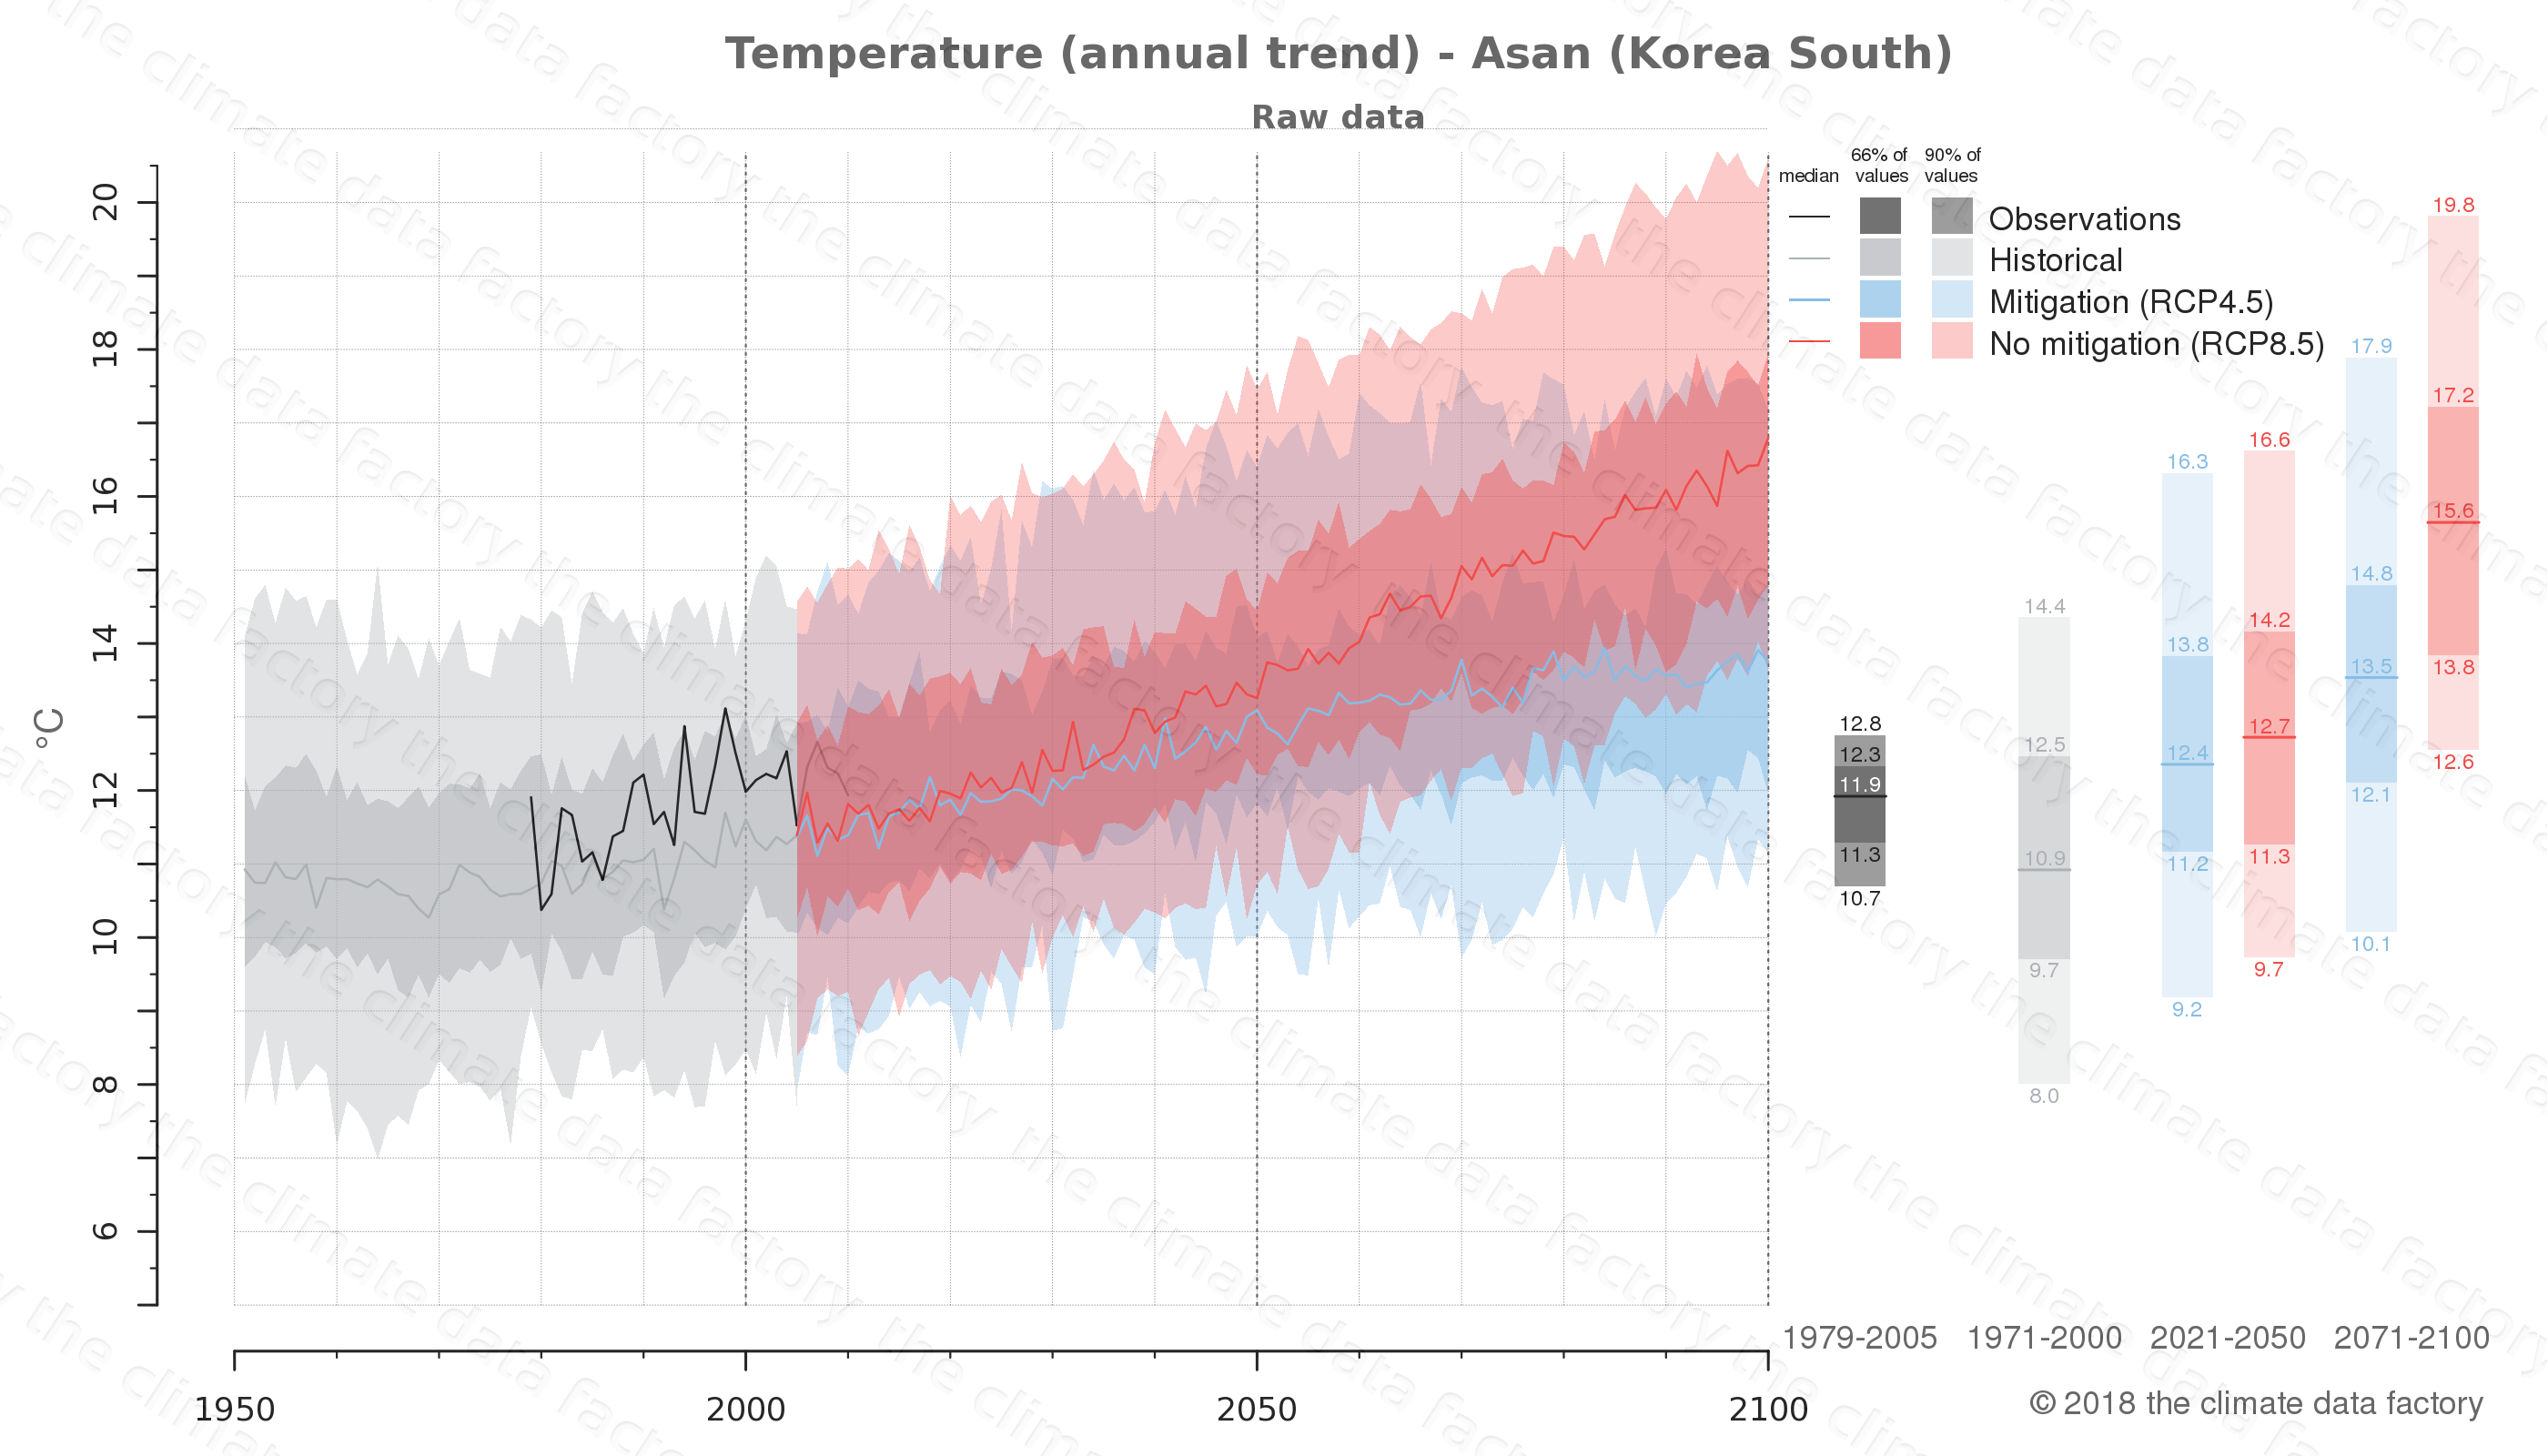 climate change data policy adaptation climate graph city data temperature asan south korea